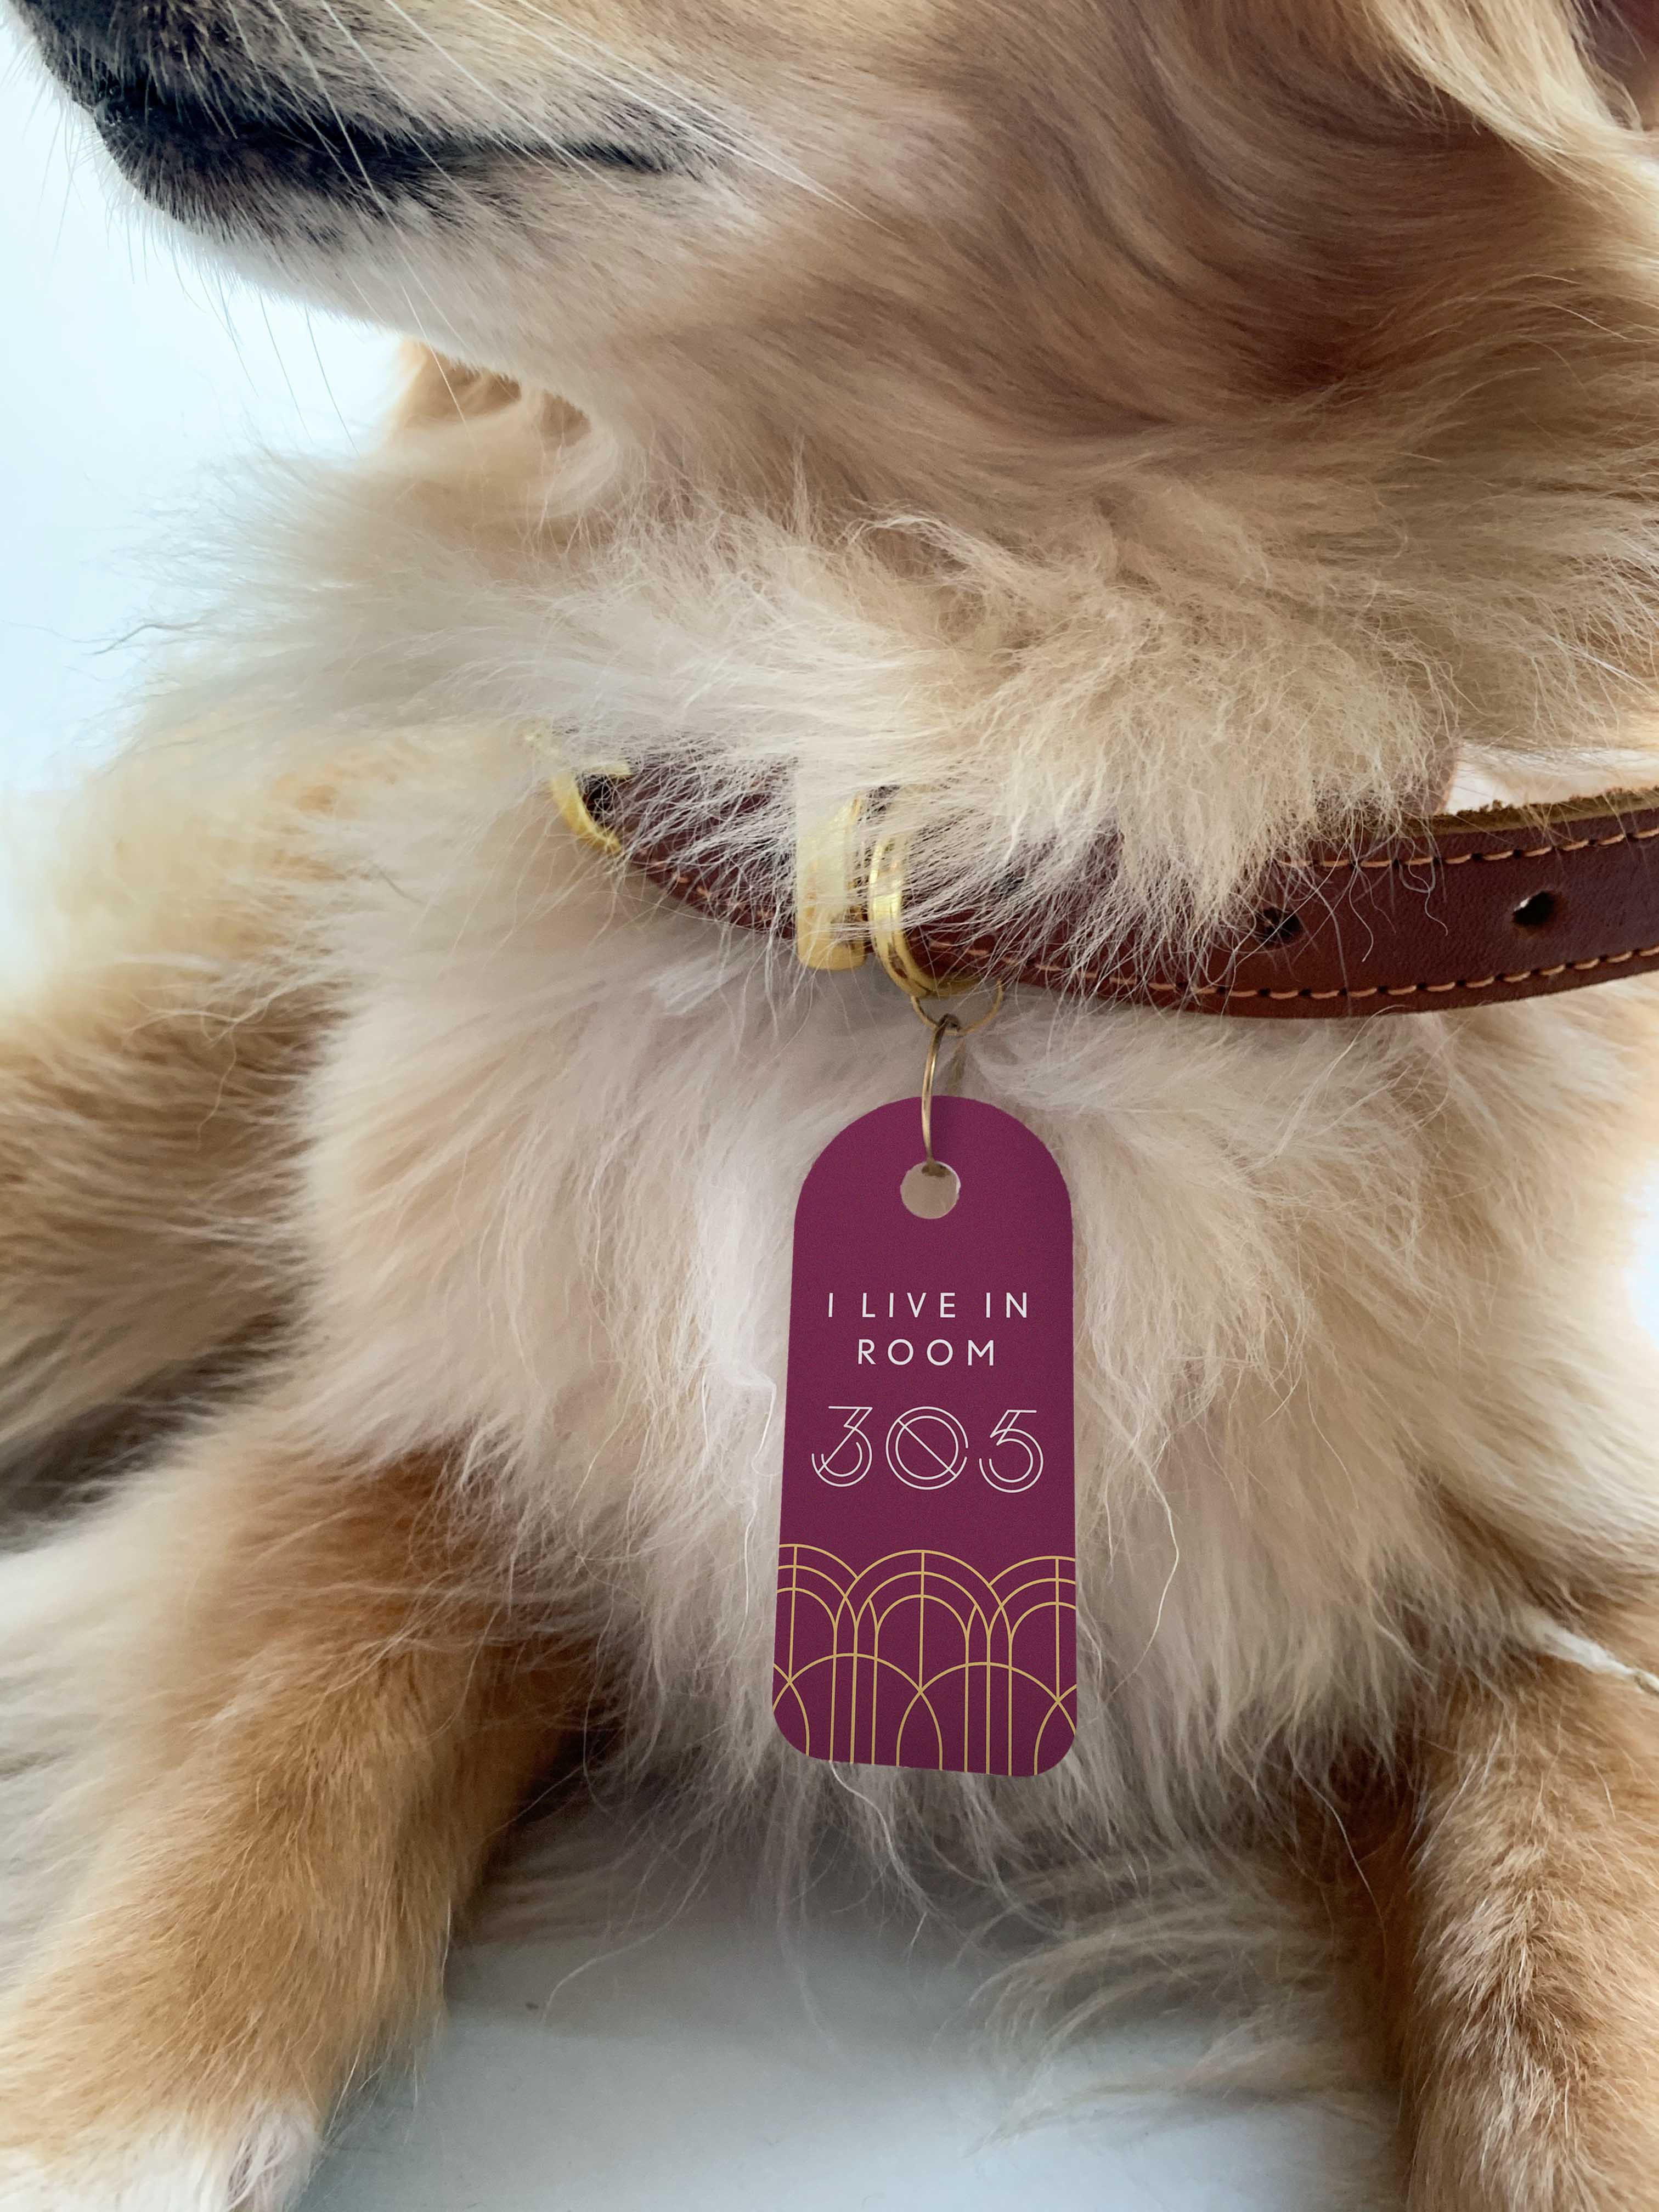 A golden dog wearing her keycard on her collar